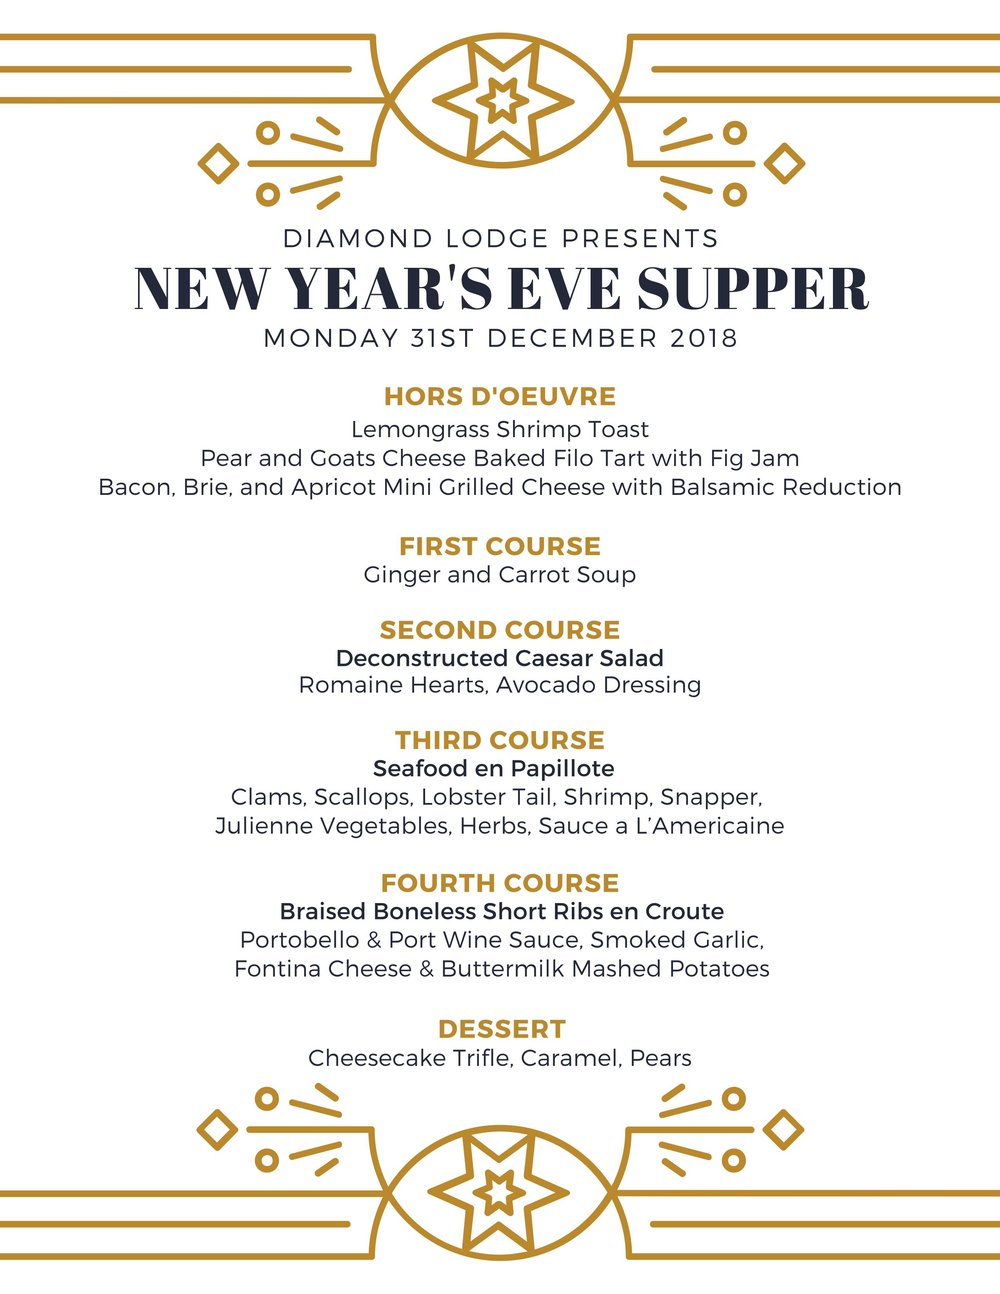 NYE Supper 2018_2019 Menu.jpg